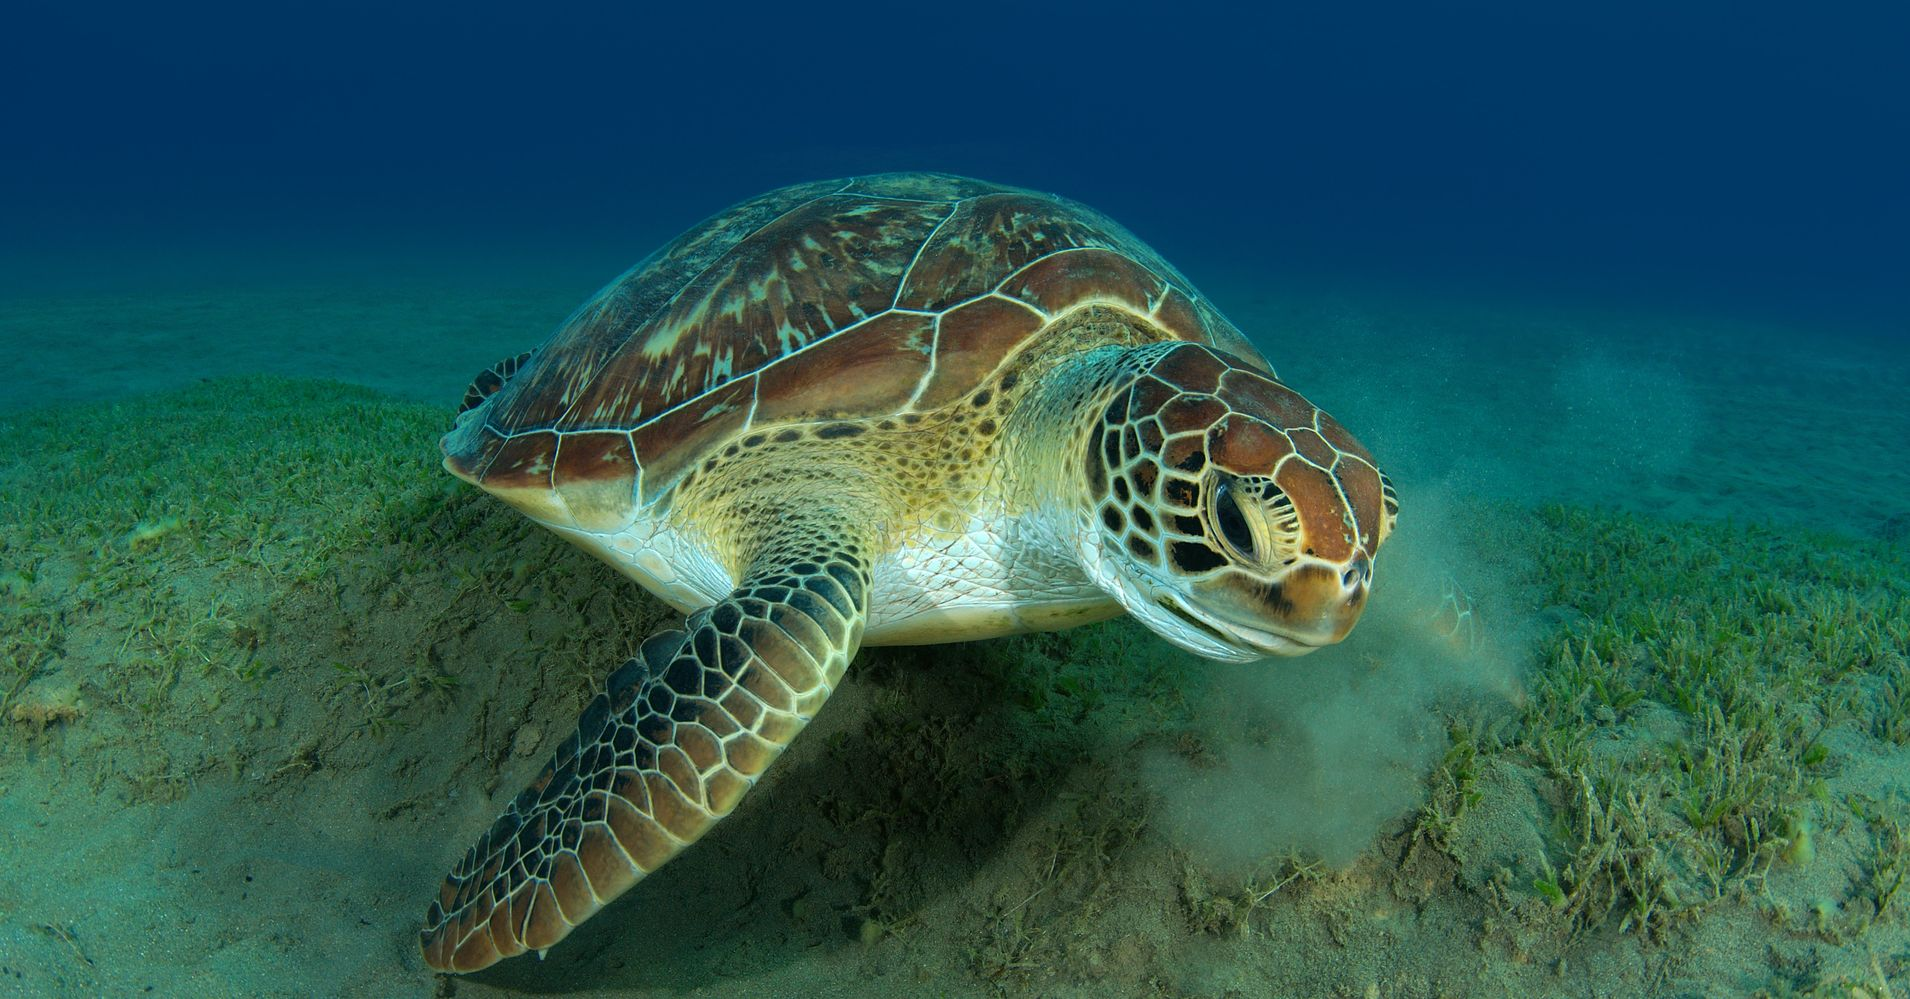 Some Green Sea Turtles Can Now Wave Goodbye To Their ... - photo#27